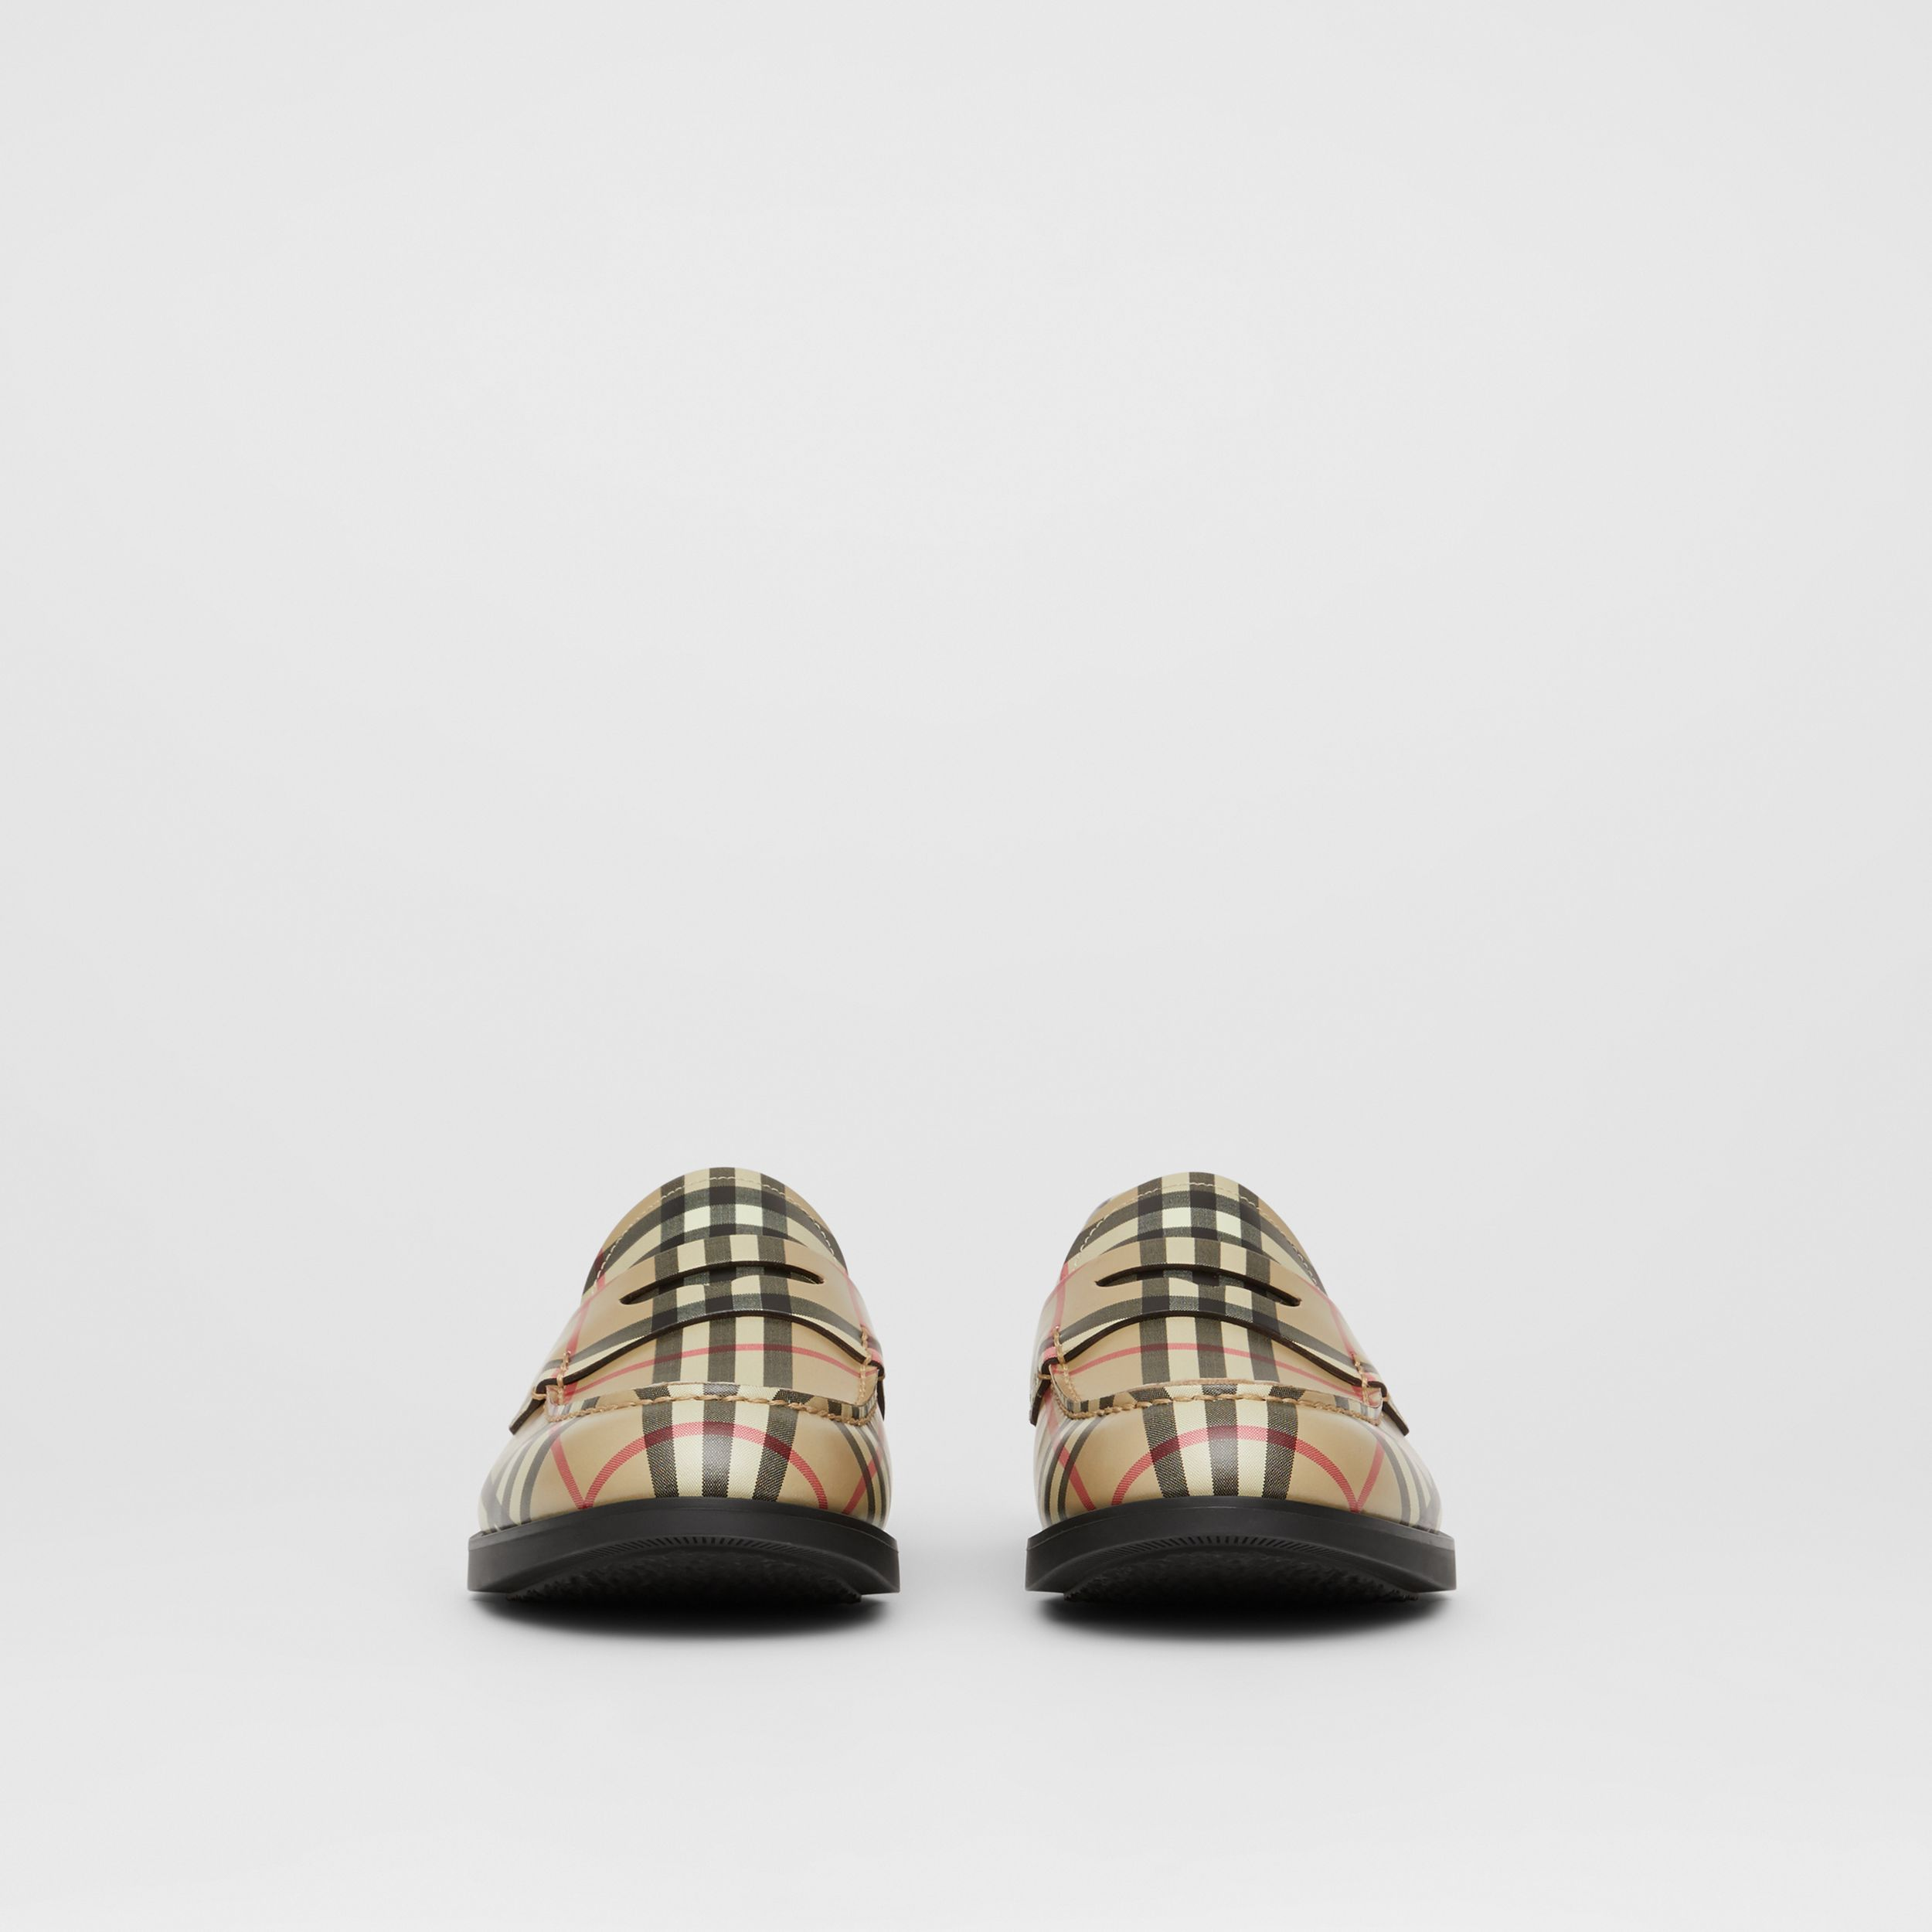 D-ring Detail Vintage Check Leather Loafers in Archive Beige - Men | Burberry - 3